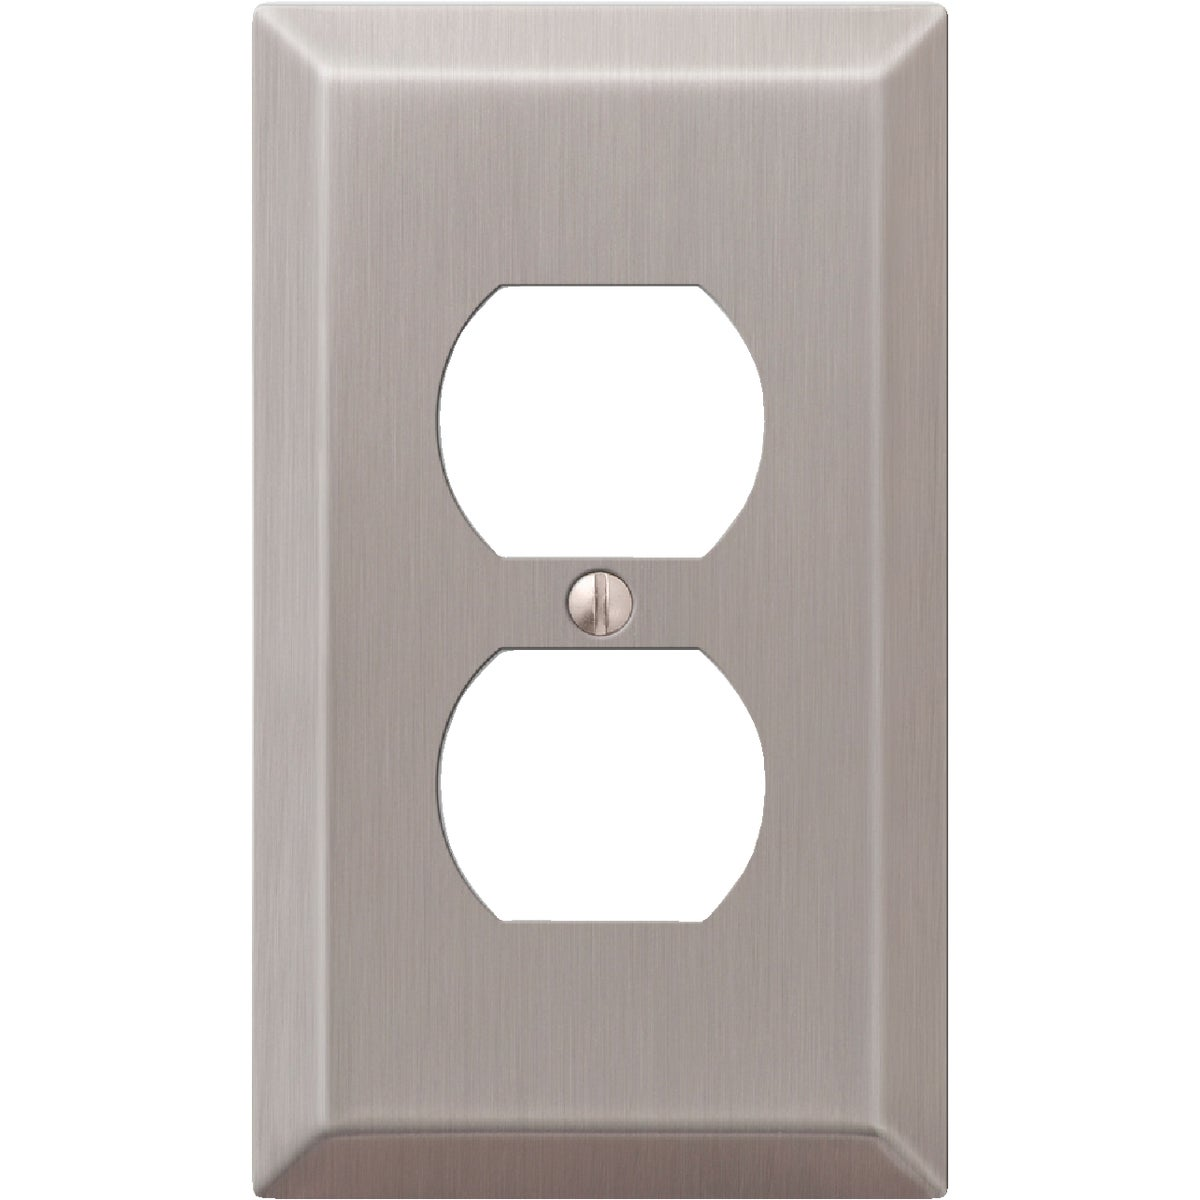 BR NICKEL OUTLET WALLPLT - 9PT108 by Jackson Deerfield Mf